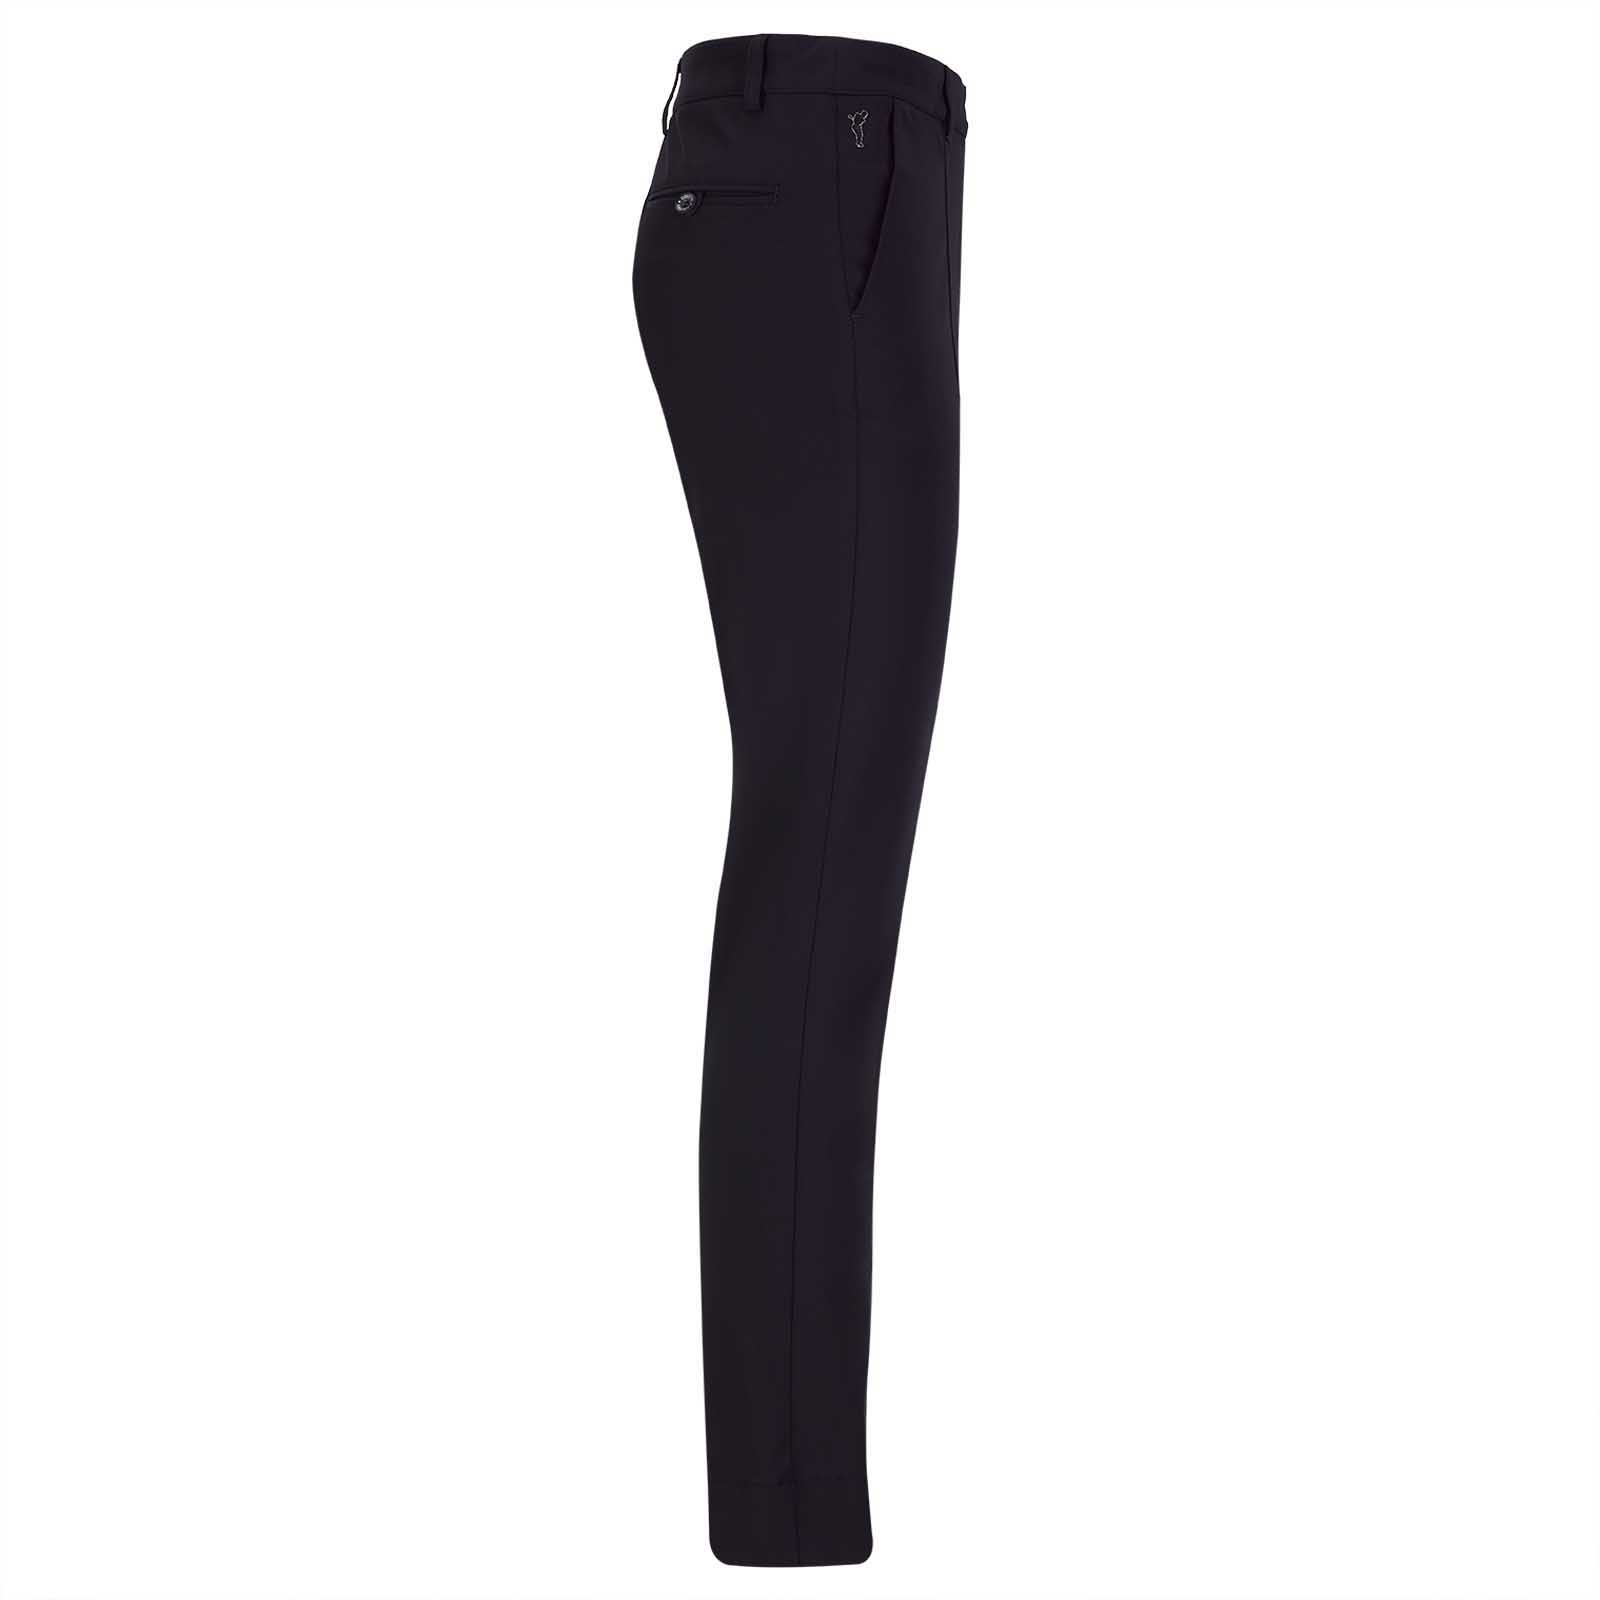 Damen Stretch Golfhose aus feinem Cotton-Blend in Slim Fit